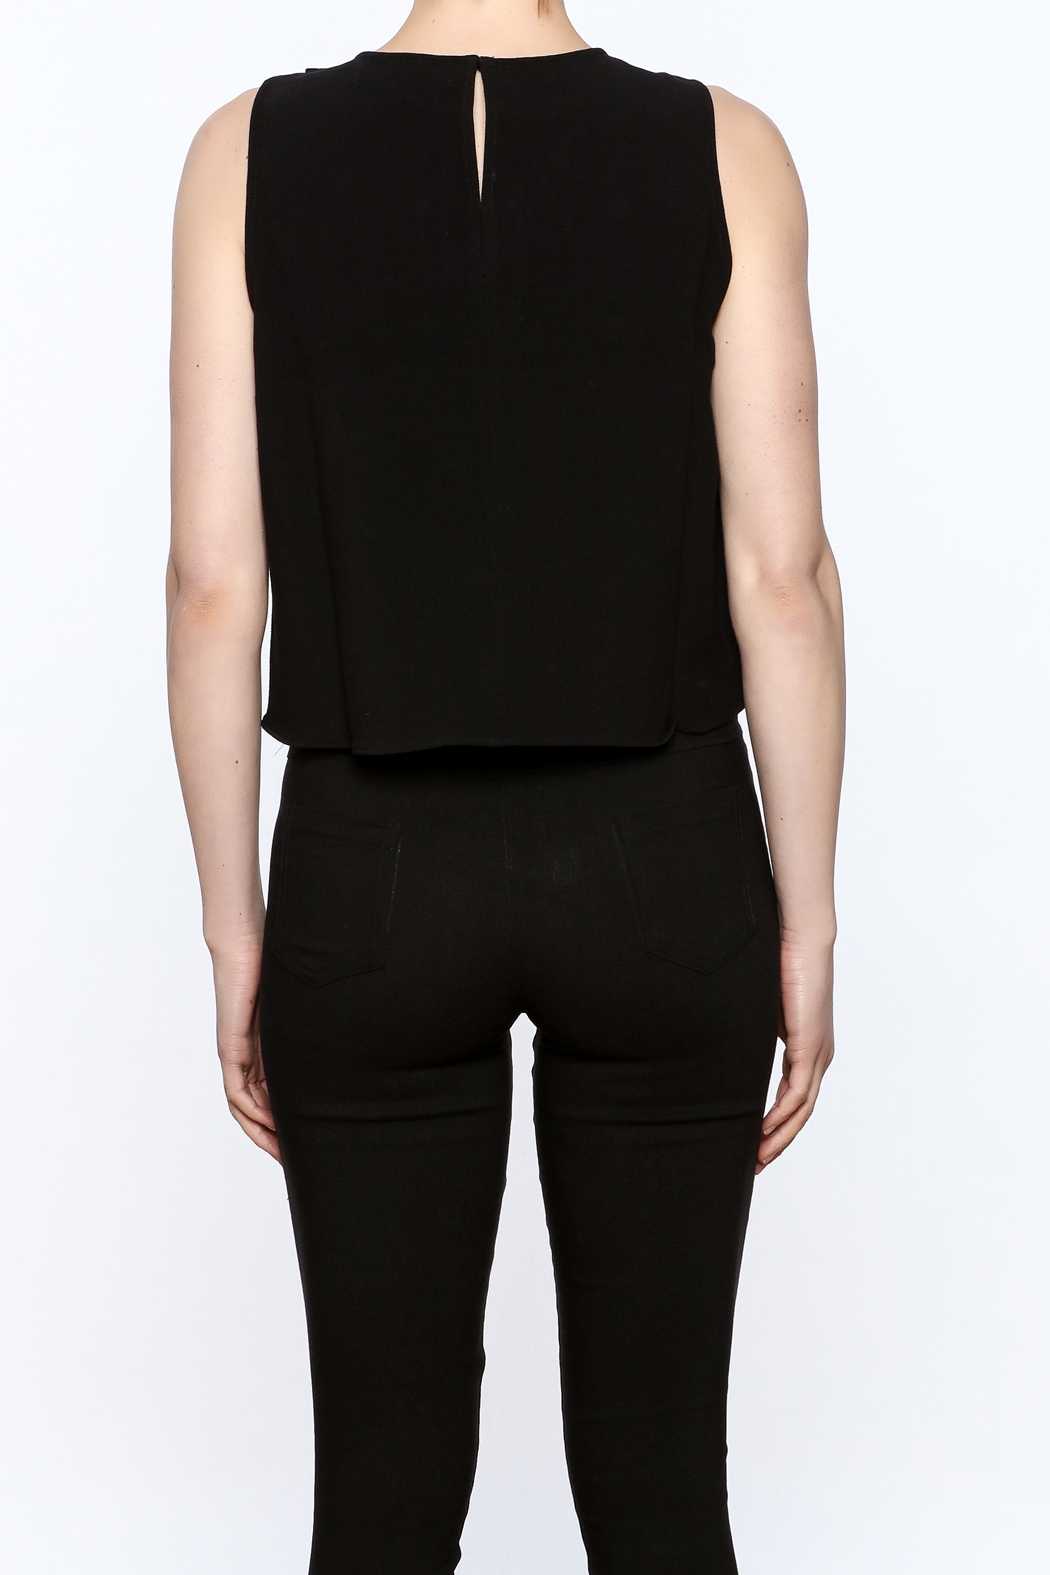 Do & Be Asymmetrical Crop Top - Back Cropped Image